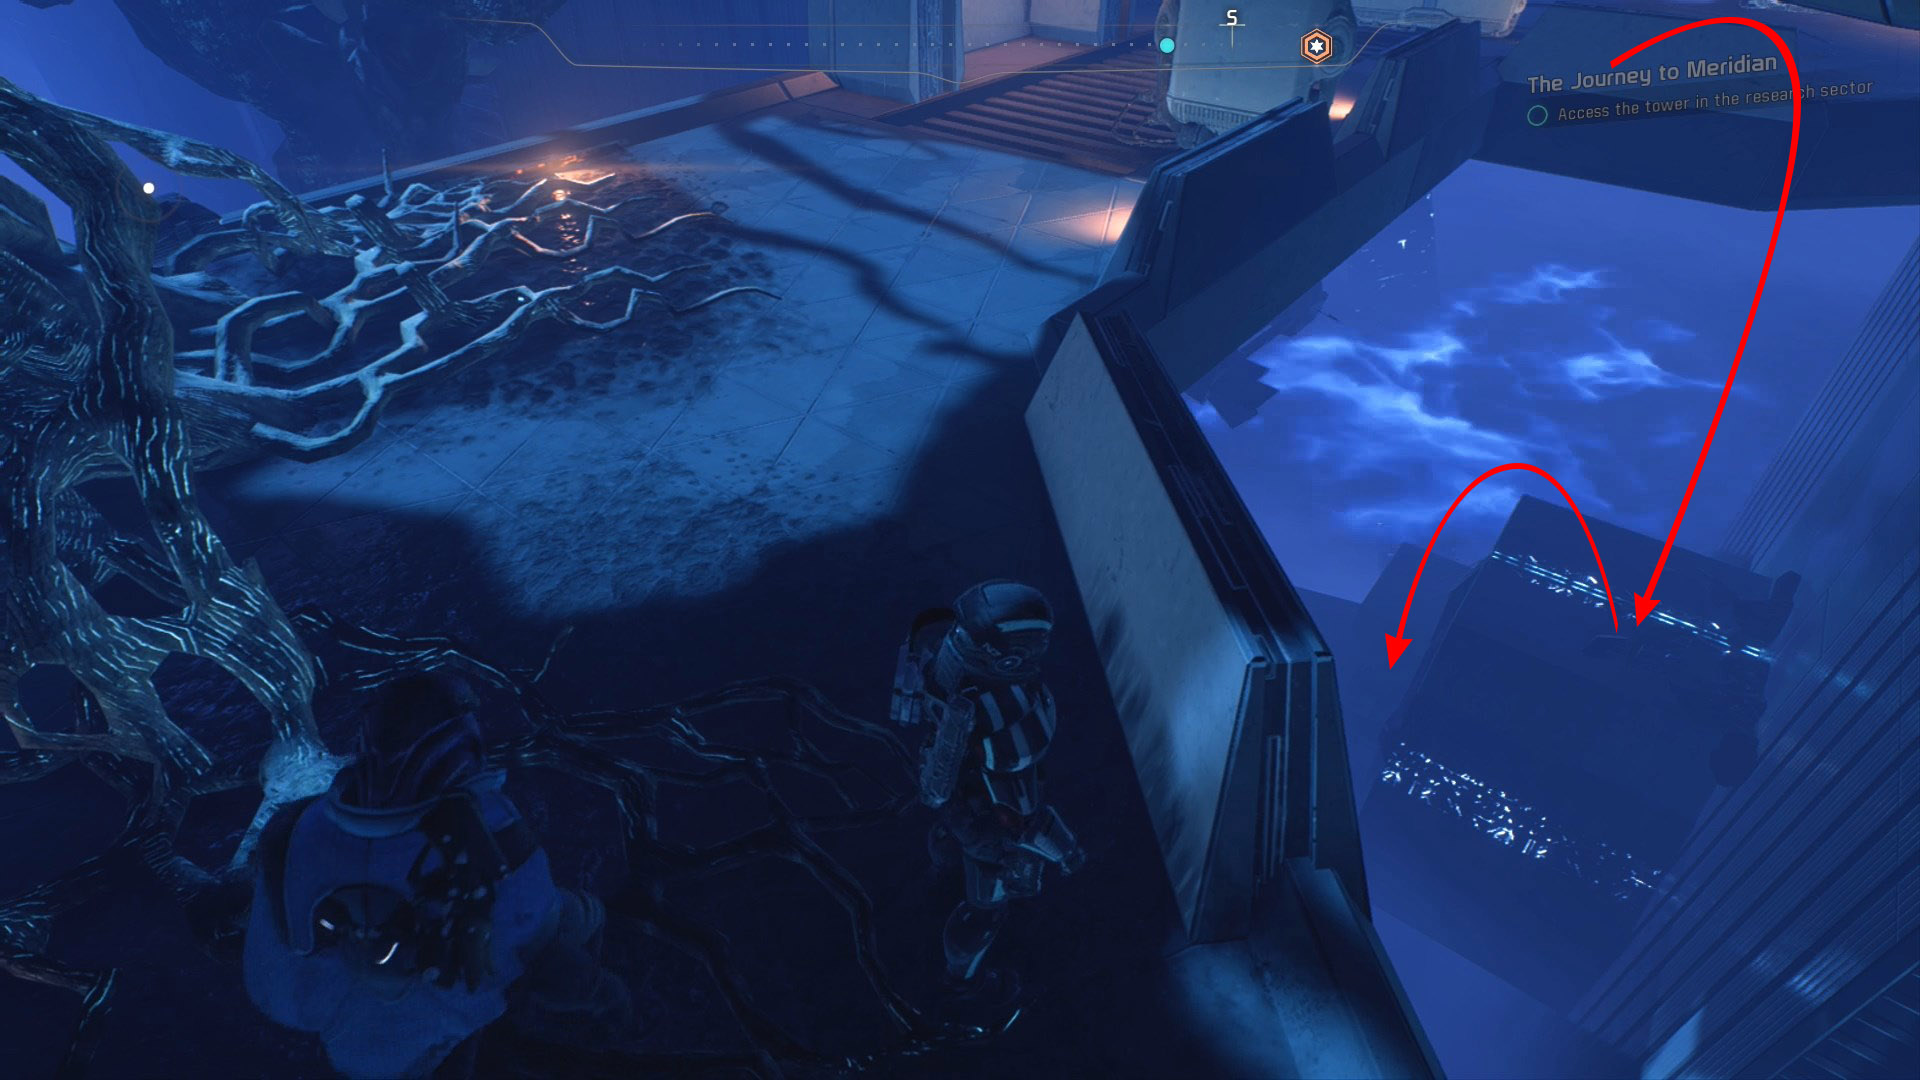 Mass Effect Andromeda Remnant Decryption Puzzle Visual Reference - Khi Tasira - The Journey to Meridian